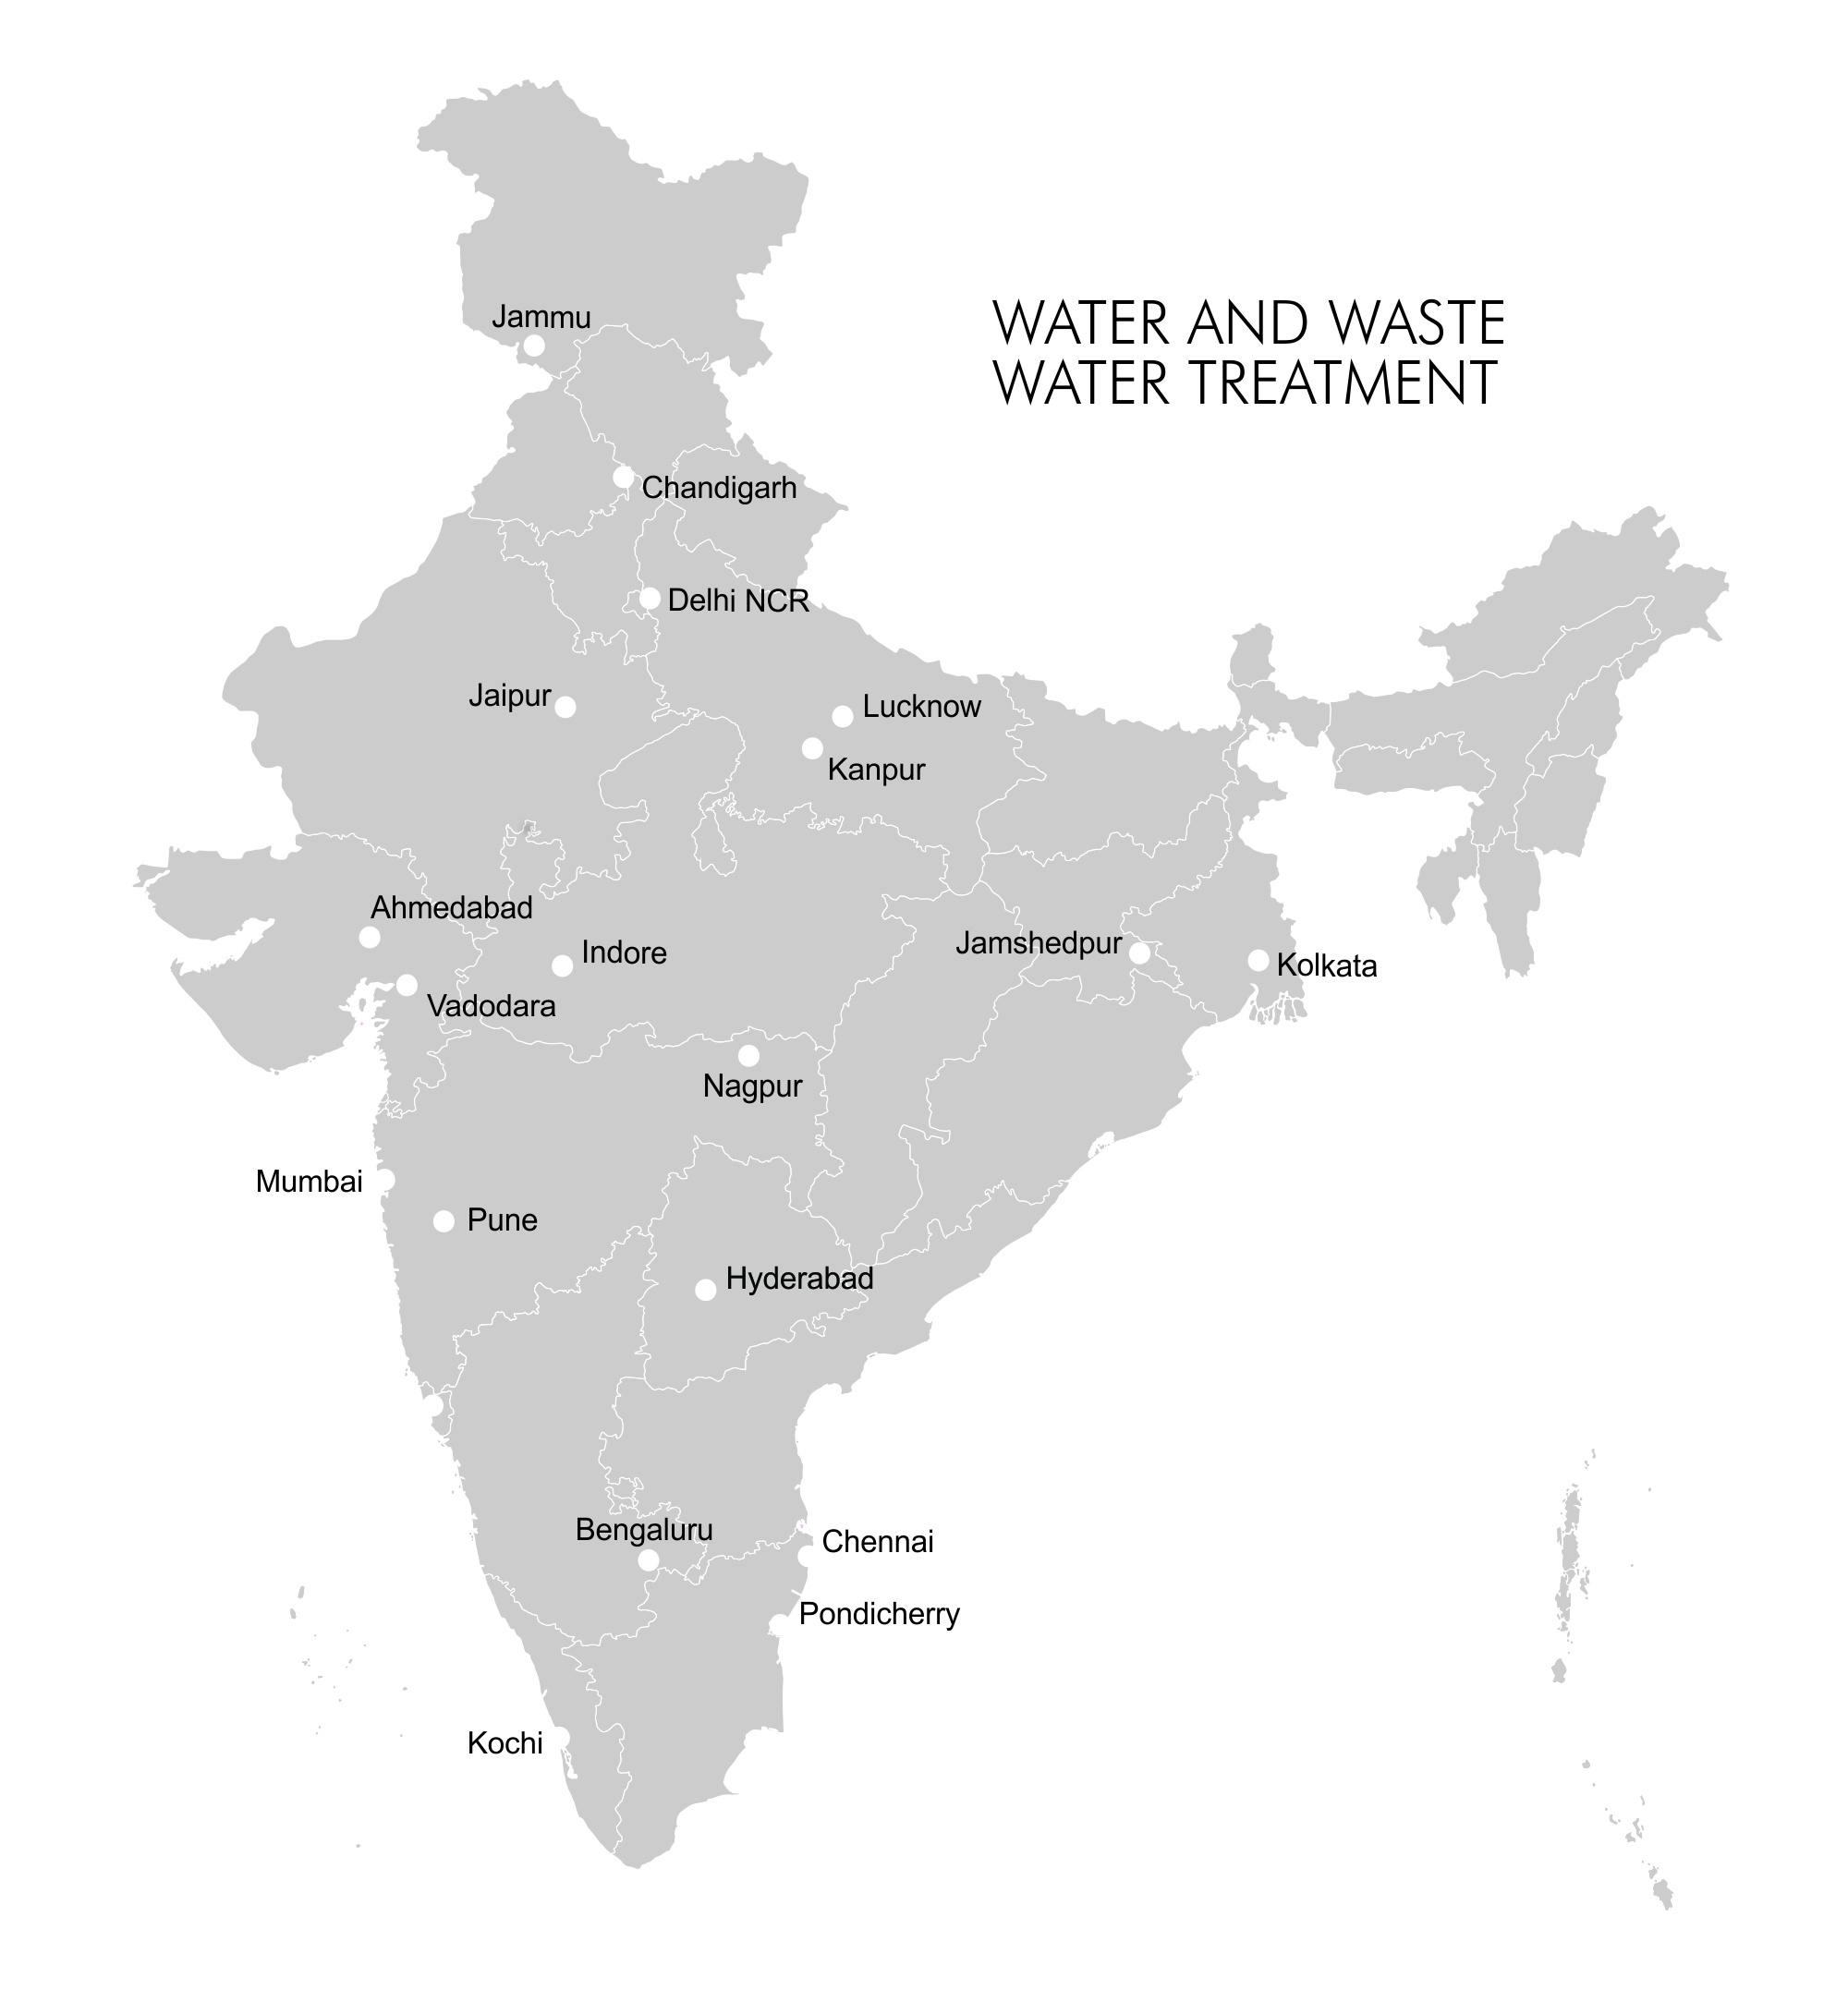 Map - Industry Clusters: Water and Waste Water Treatment